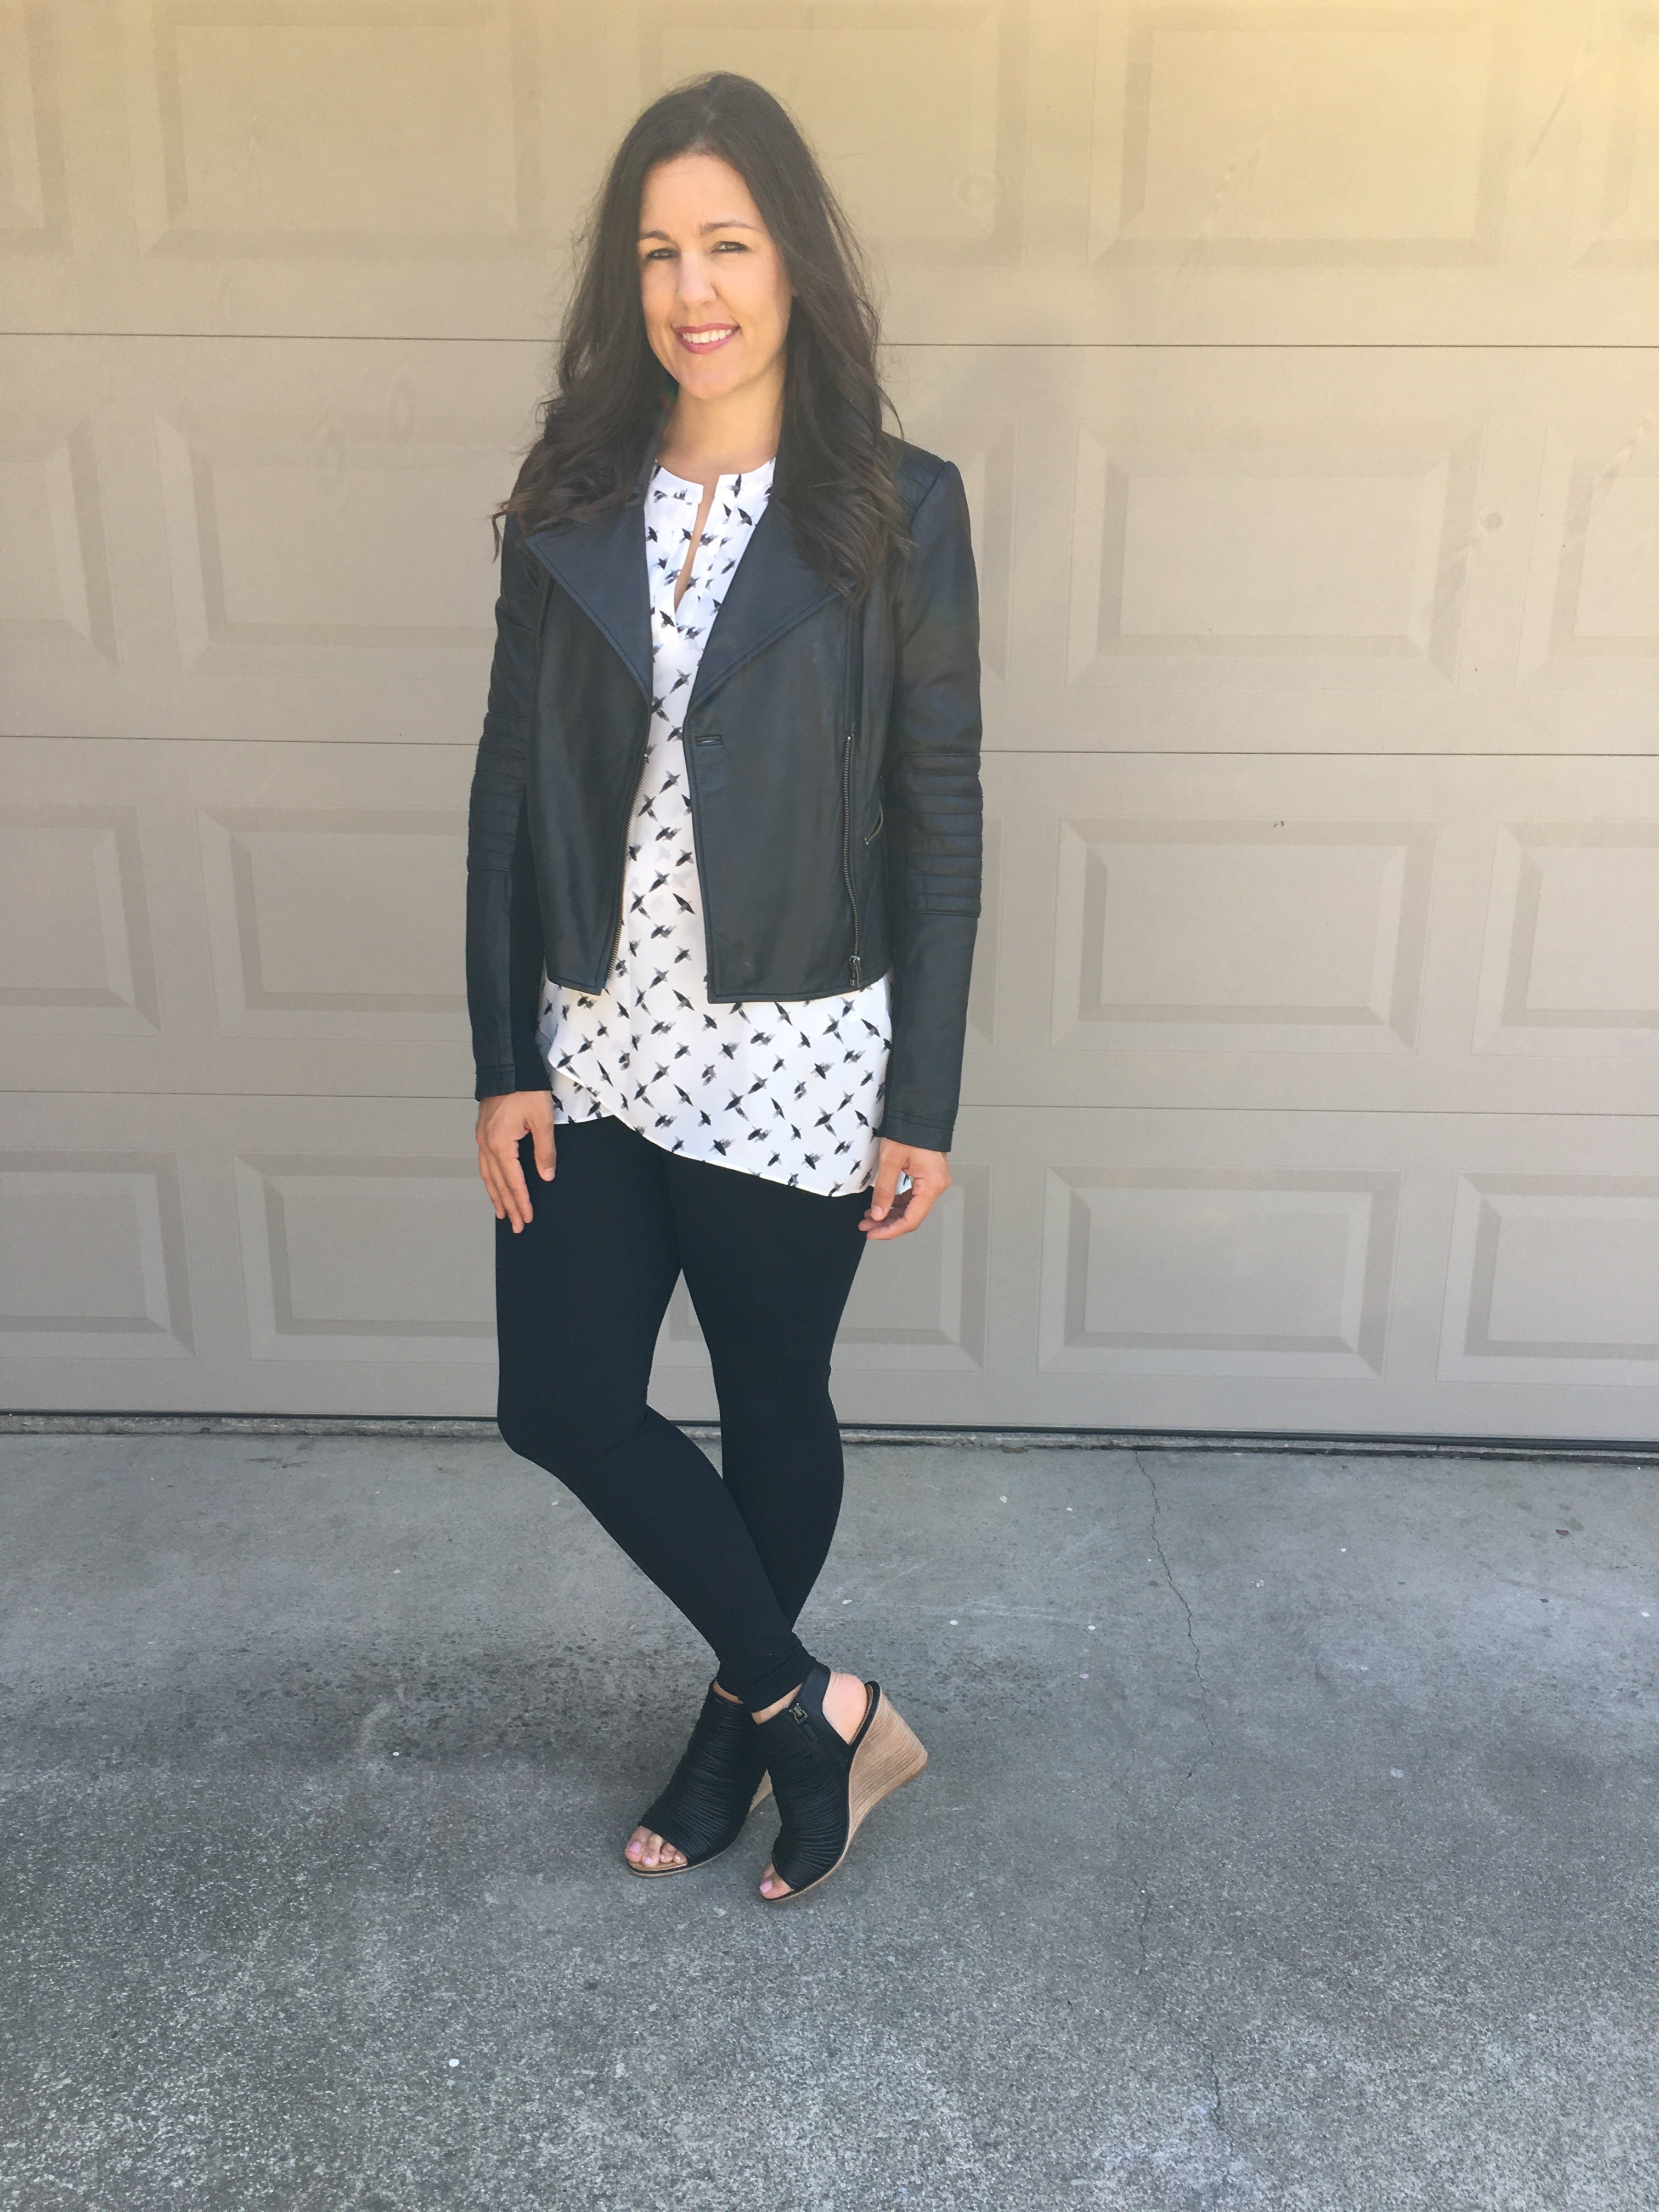 Black and White | how to style a leather jacket | fall style ideas | fall fashion tips | styling for fall and winter | cool weather fashion